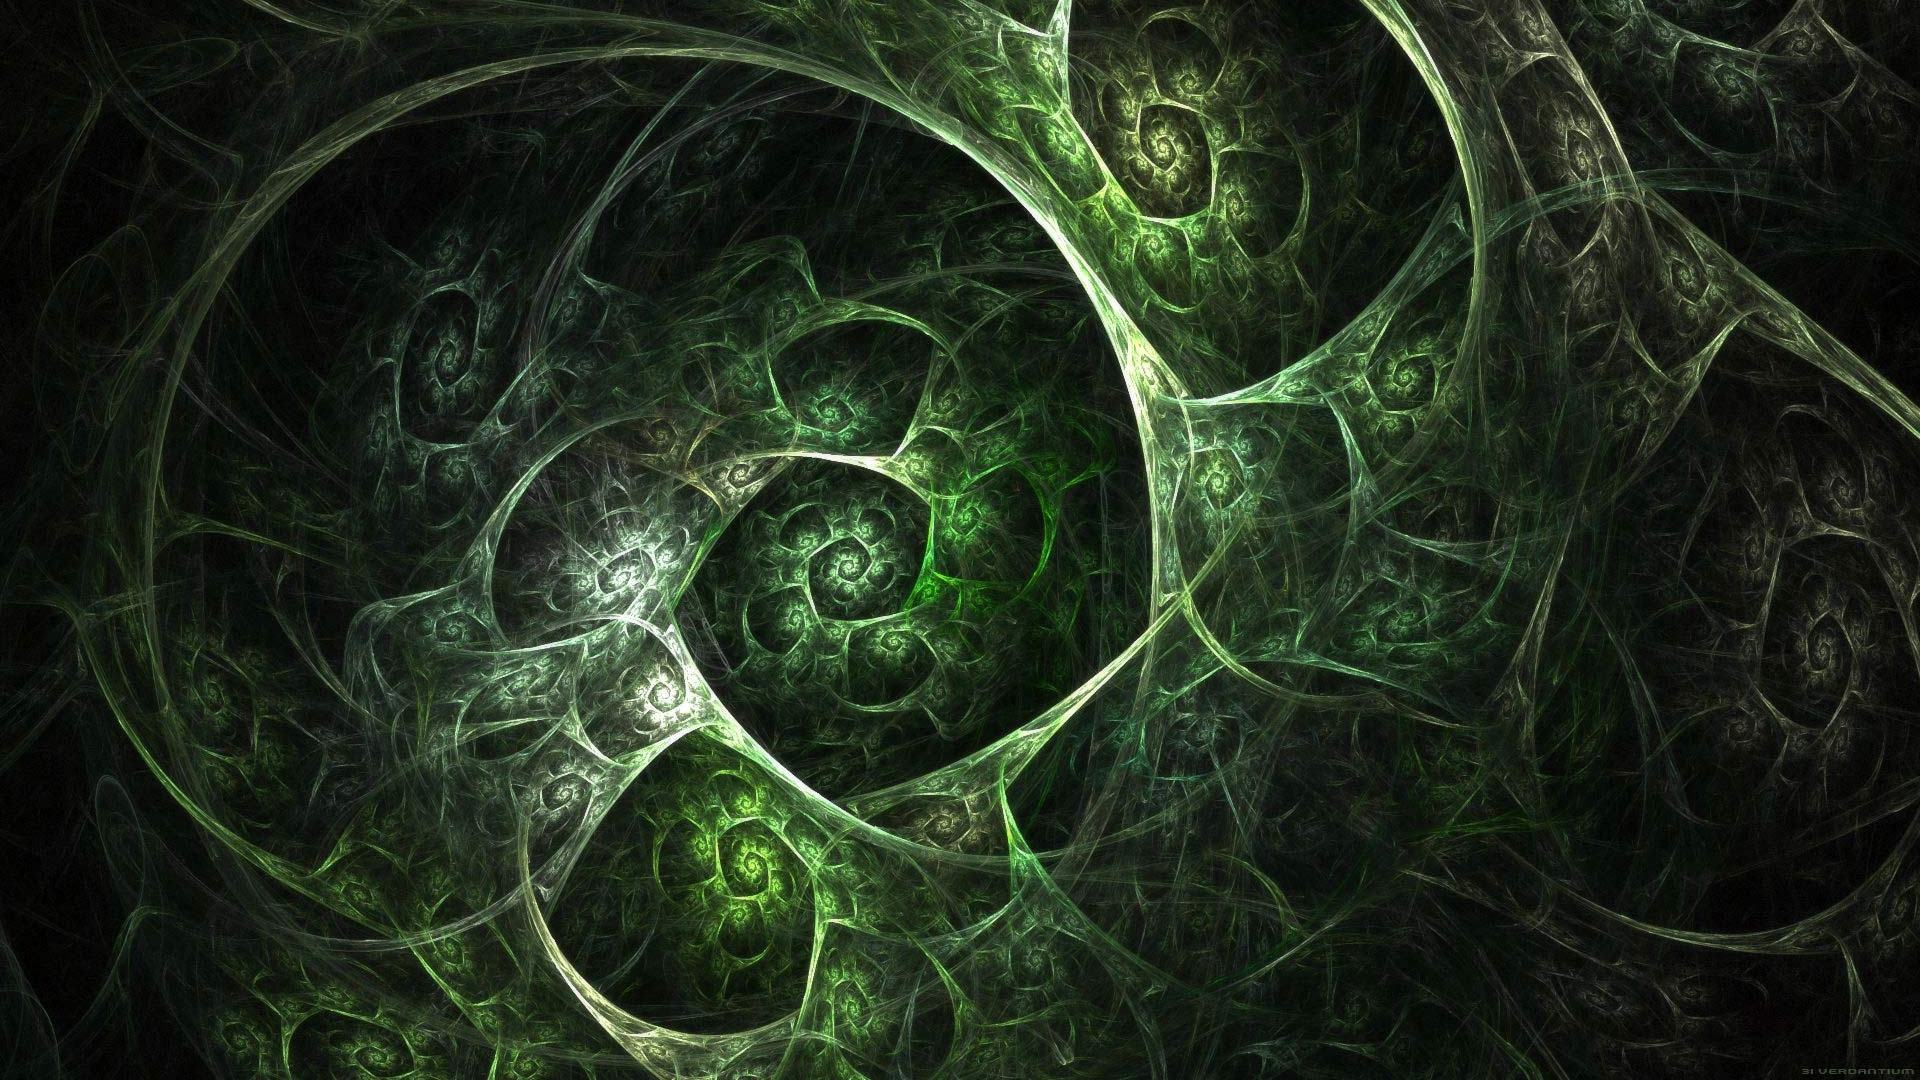 abstract Fractals apophysis spirals